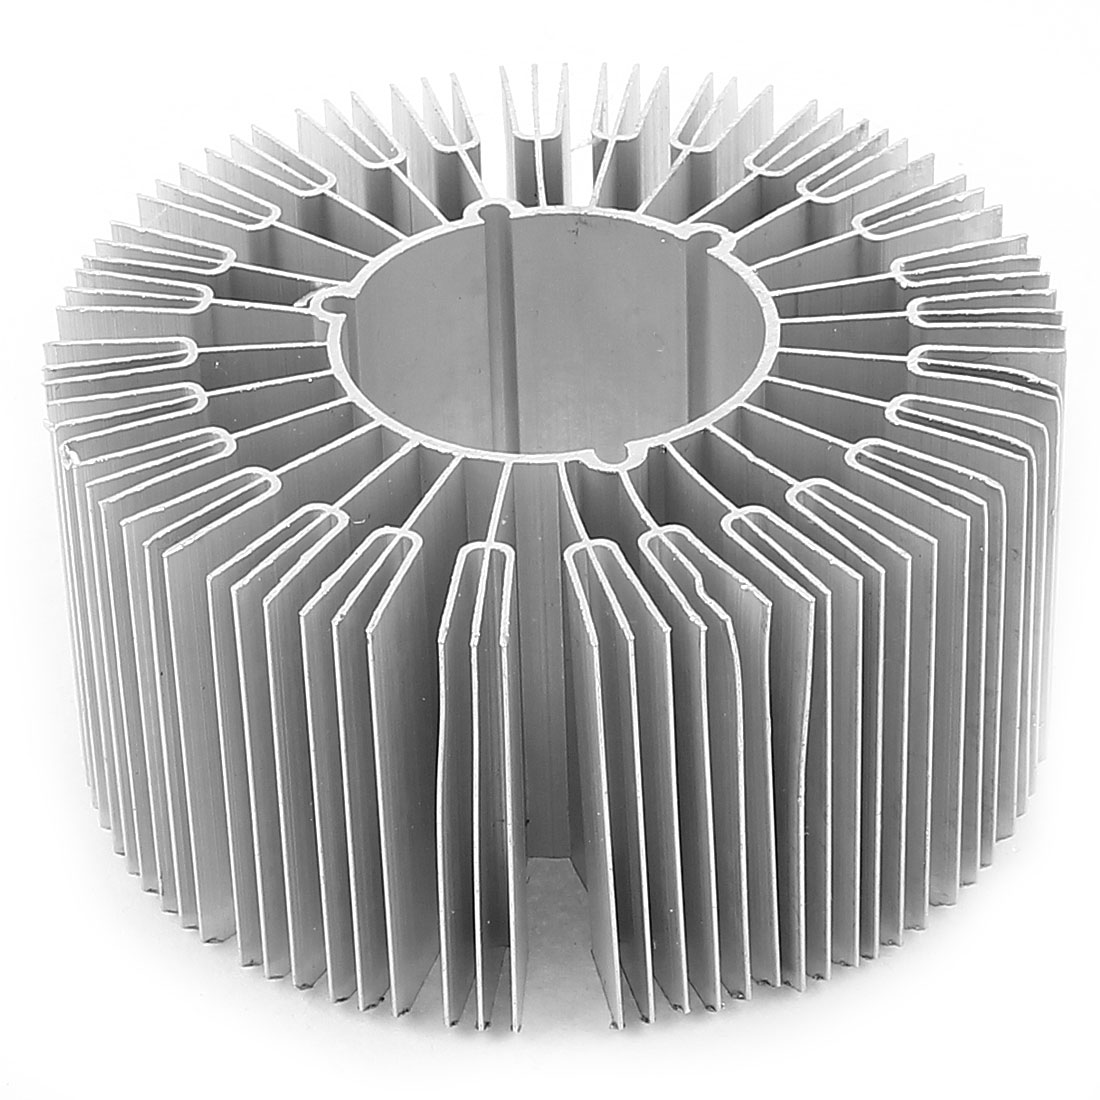 81mm x 40mm Sunflower 12W High Power LED Heatsink Aluminium Cooling Fin